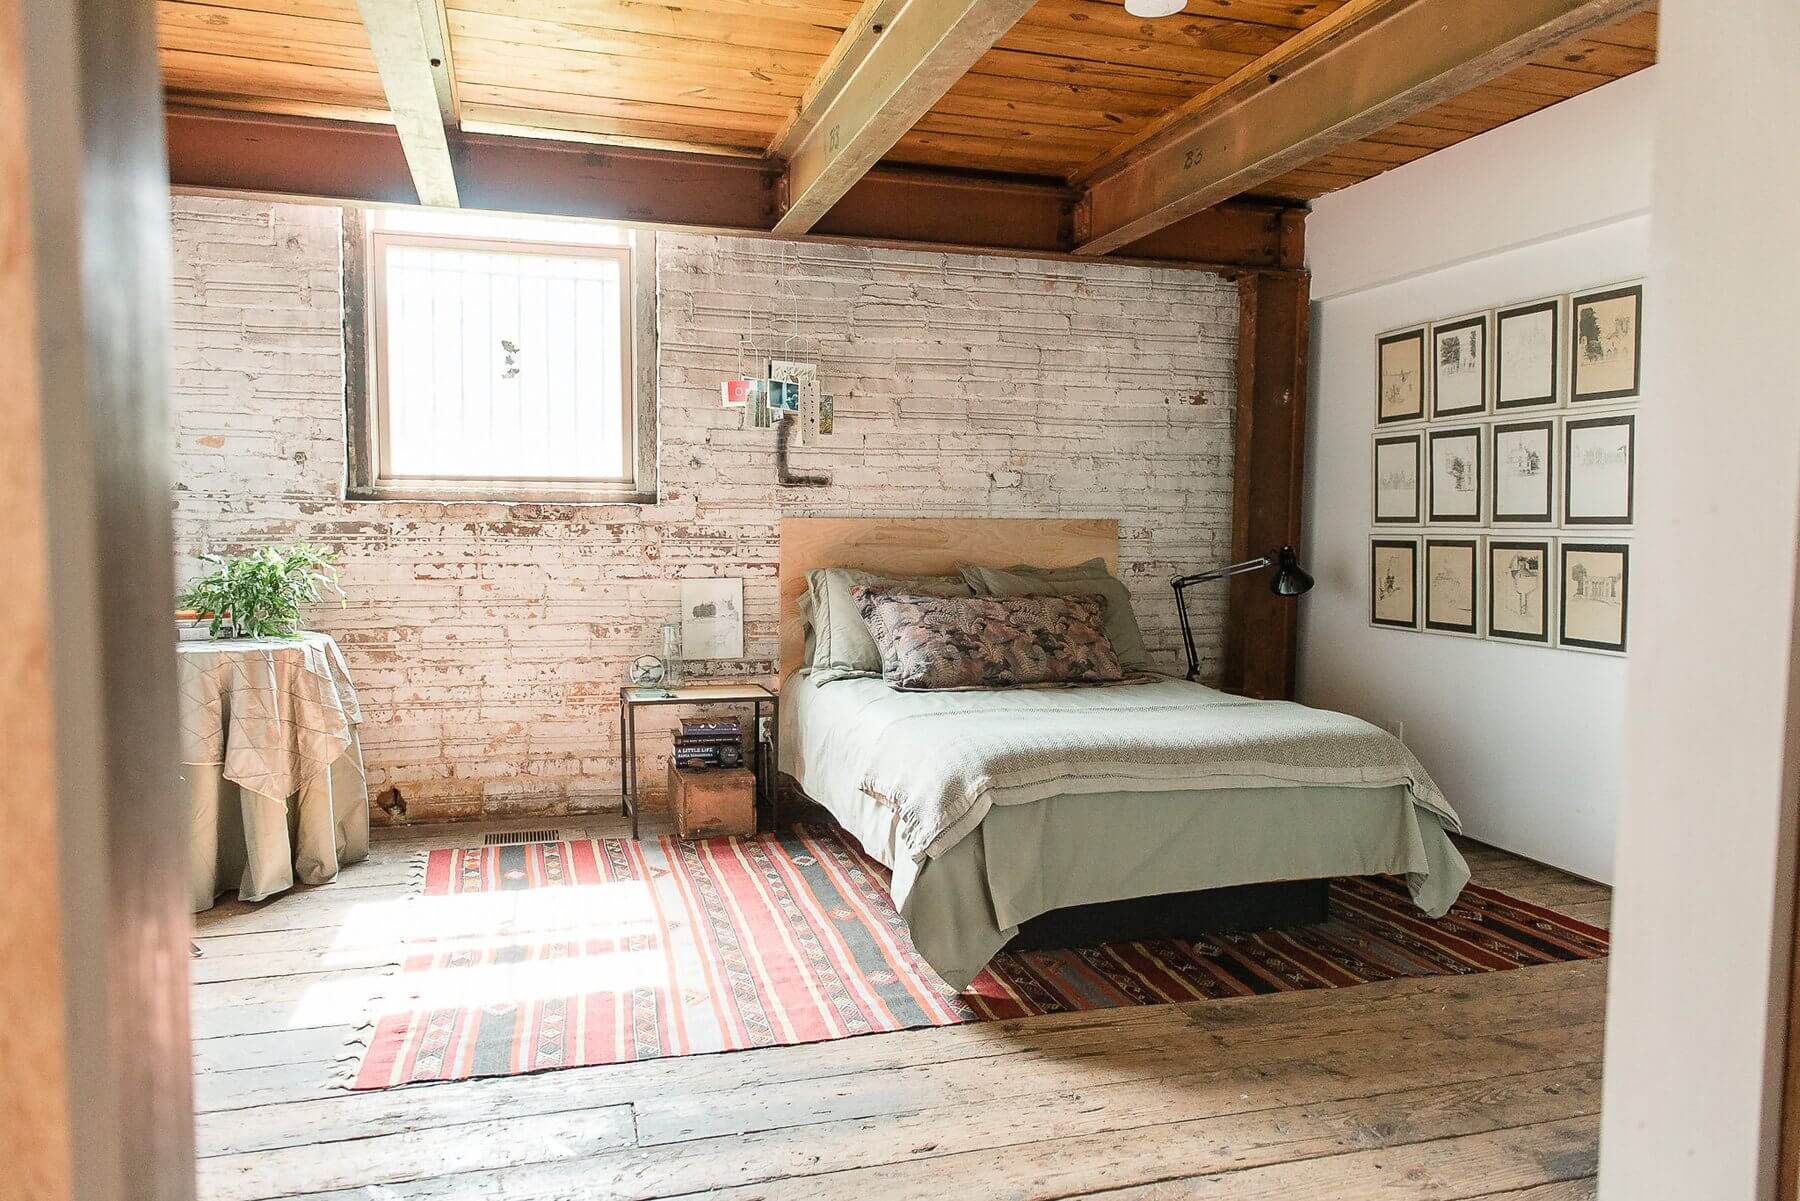 The guest bedroom exudes a rustic warmth that makes us want to cuddle up with a great book!The guest bedroom exudes a rustic warmth that makes us want to cuddle up with a great book!